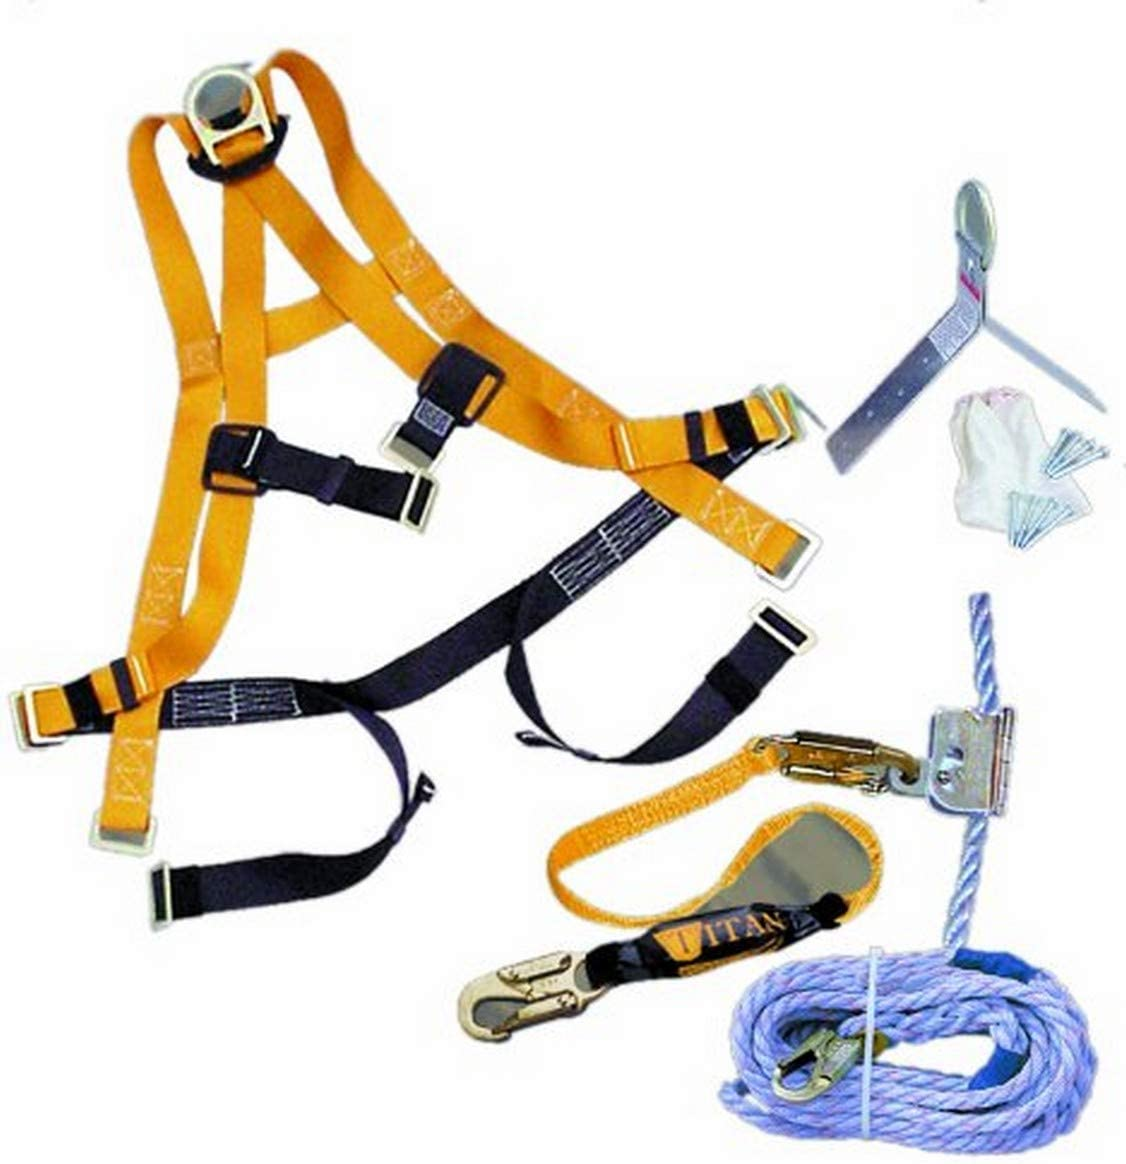 Miller Titan by Honeywell TRK4000/50FTAKU 50-Feet Titan Roofing Fall  Protection Full Body Harness Kit - Fall Arrest Safety Harnesses - Amazon.comAmazon.com